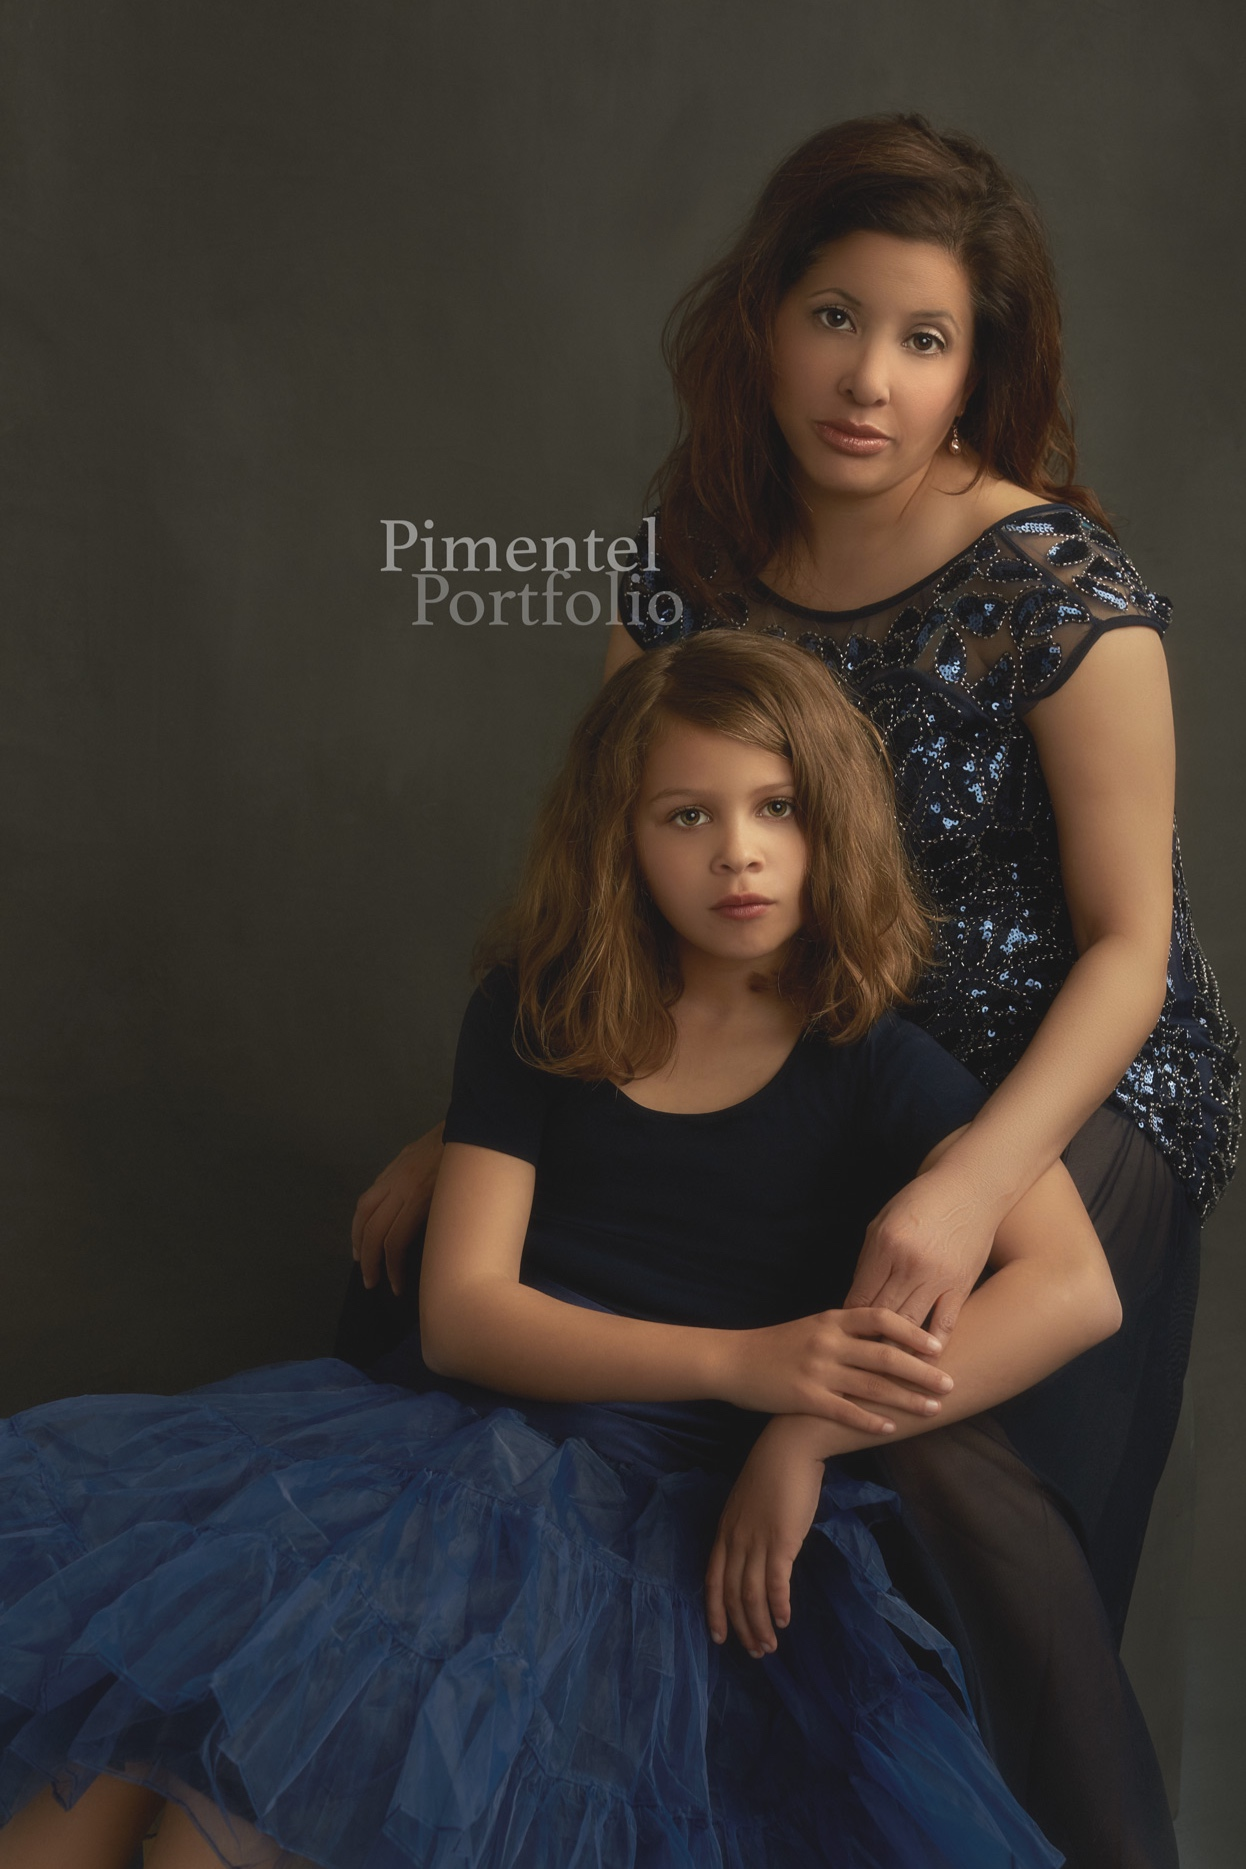 Daughter and Mother captured in time. Image by Pimentel Portfolio LLC.